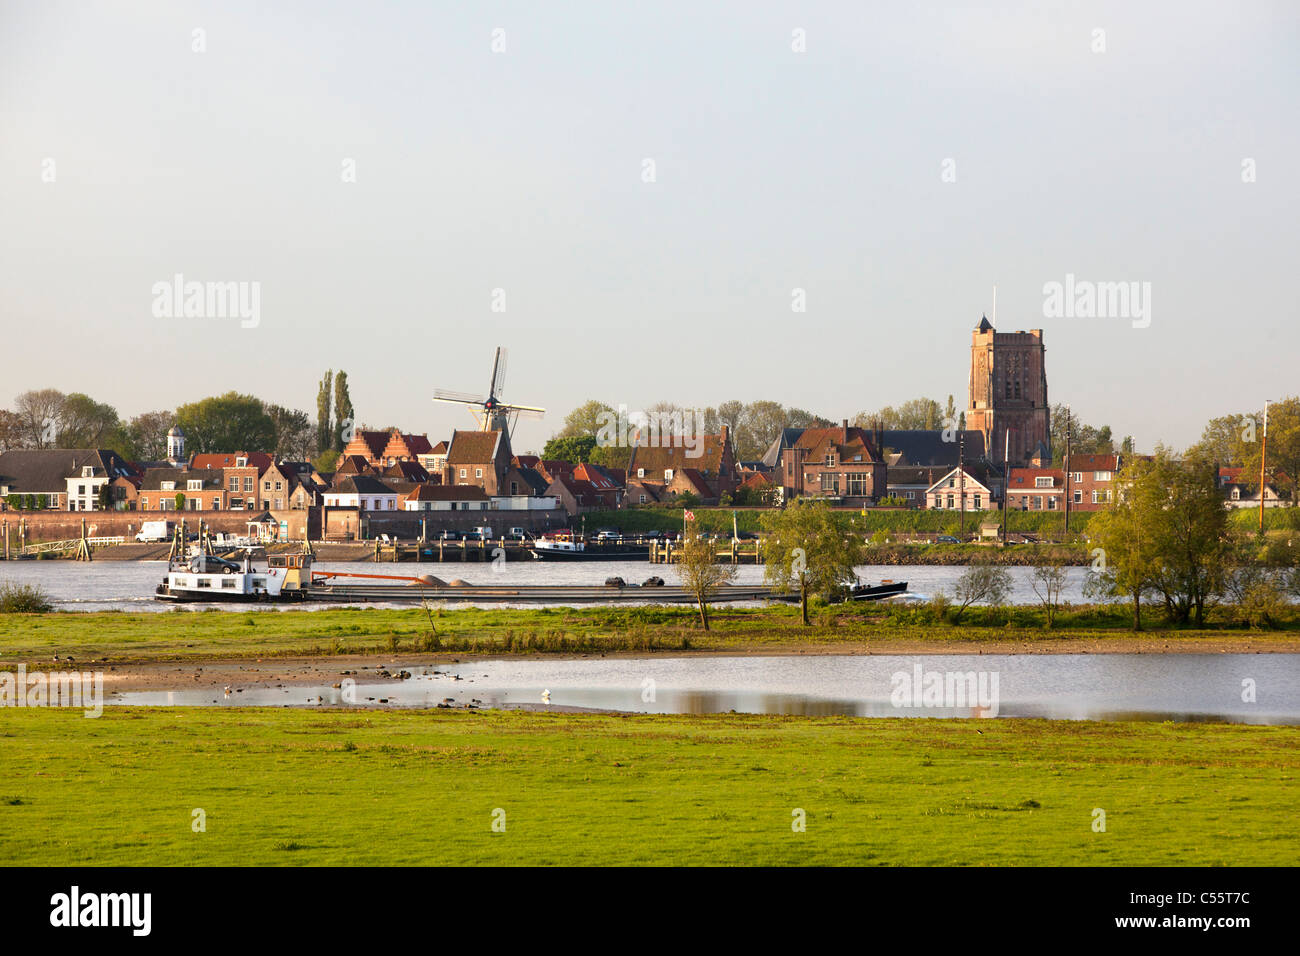 The Netherlands, Woudrichem, Skyline and cargo ship in river called Maas. Stock Photo